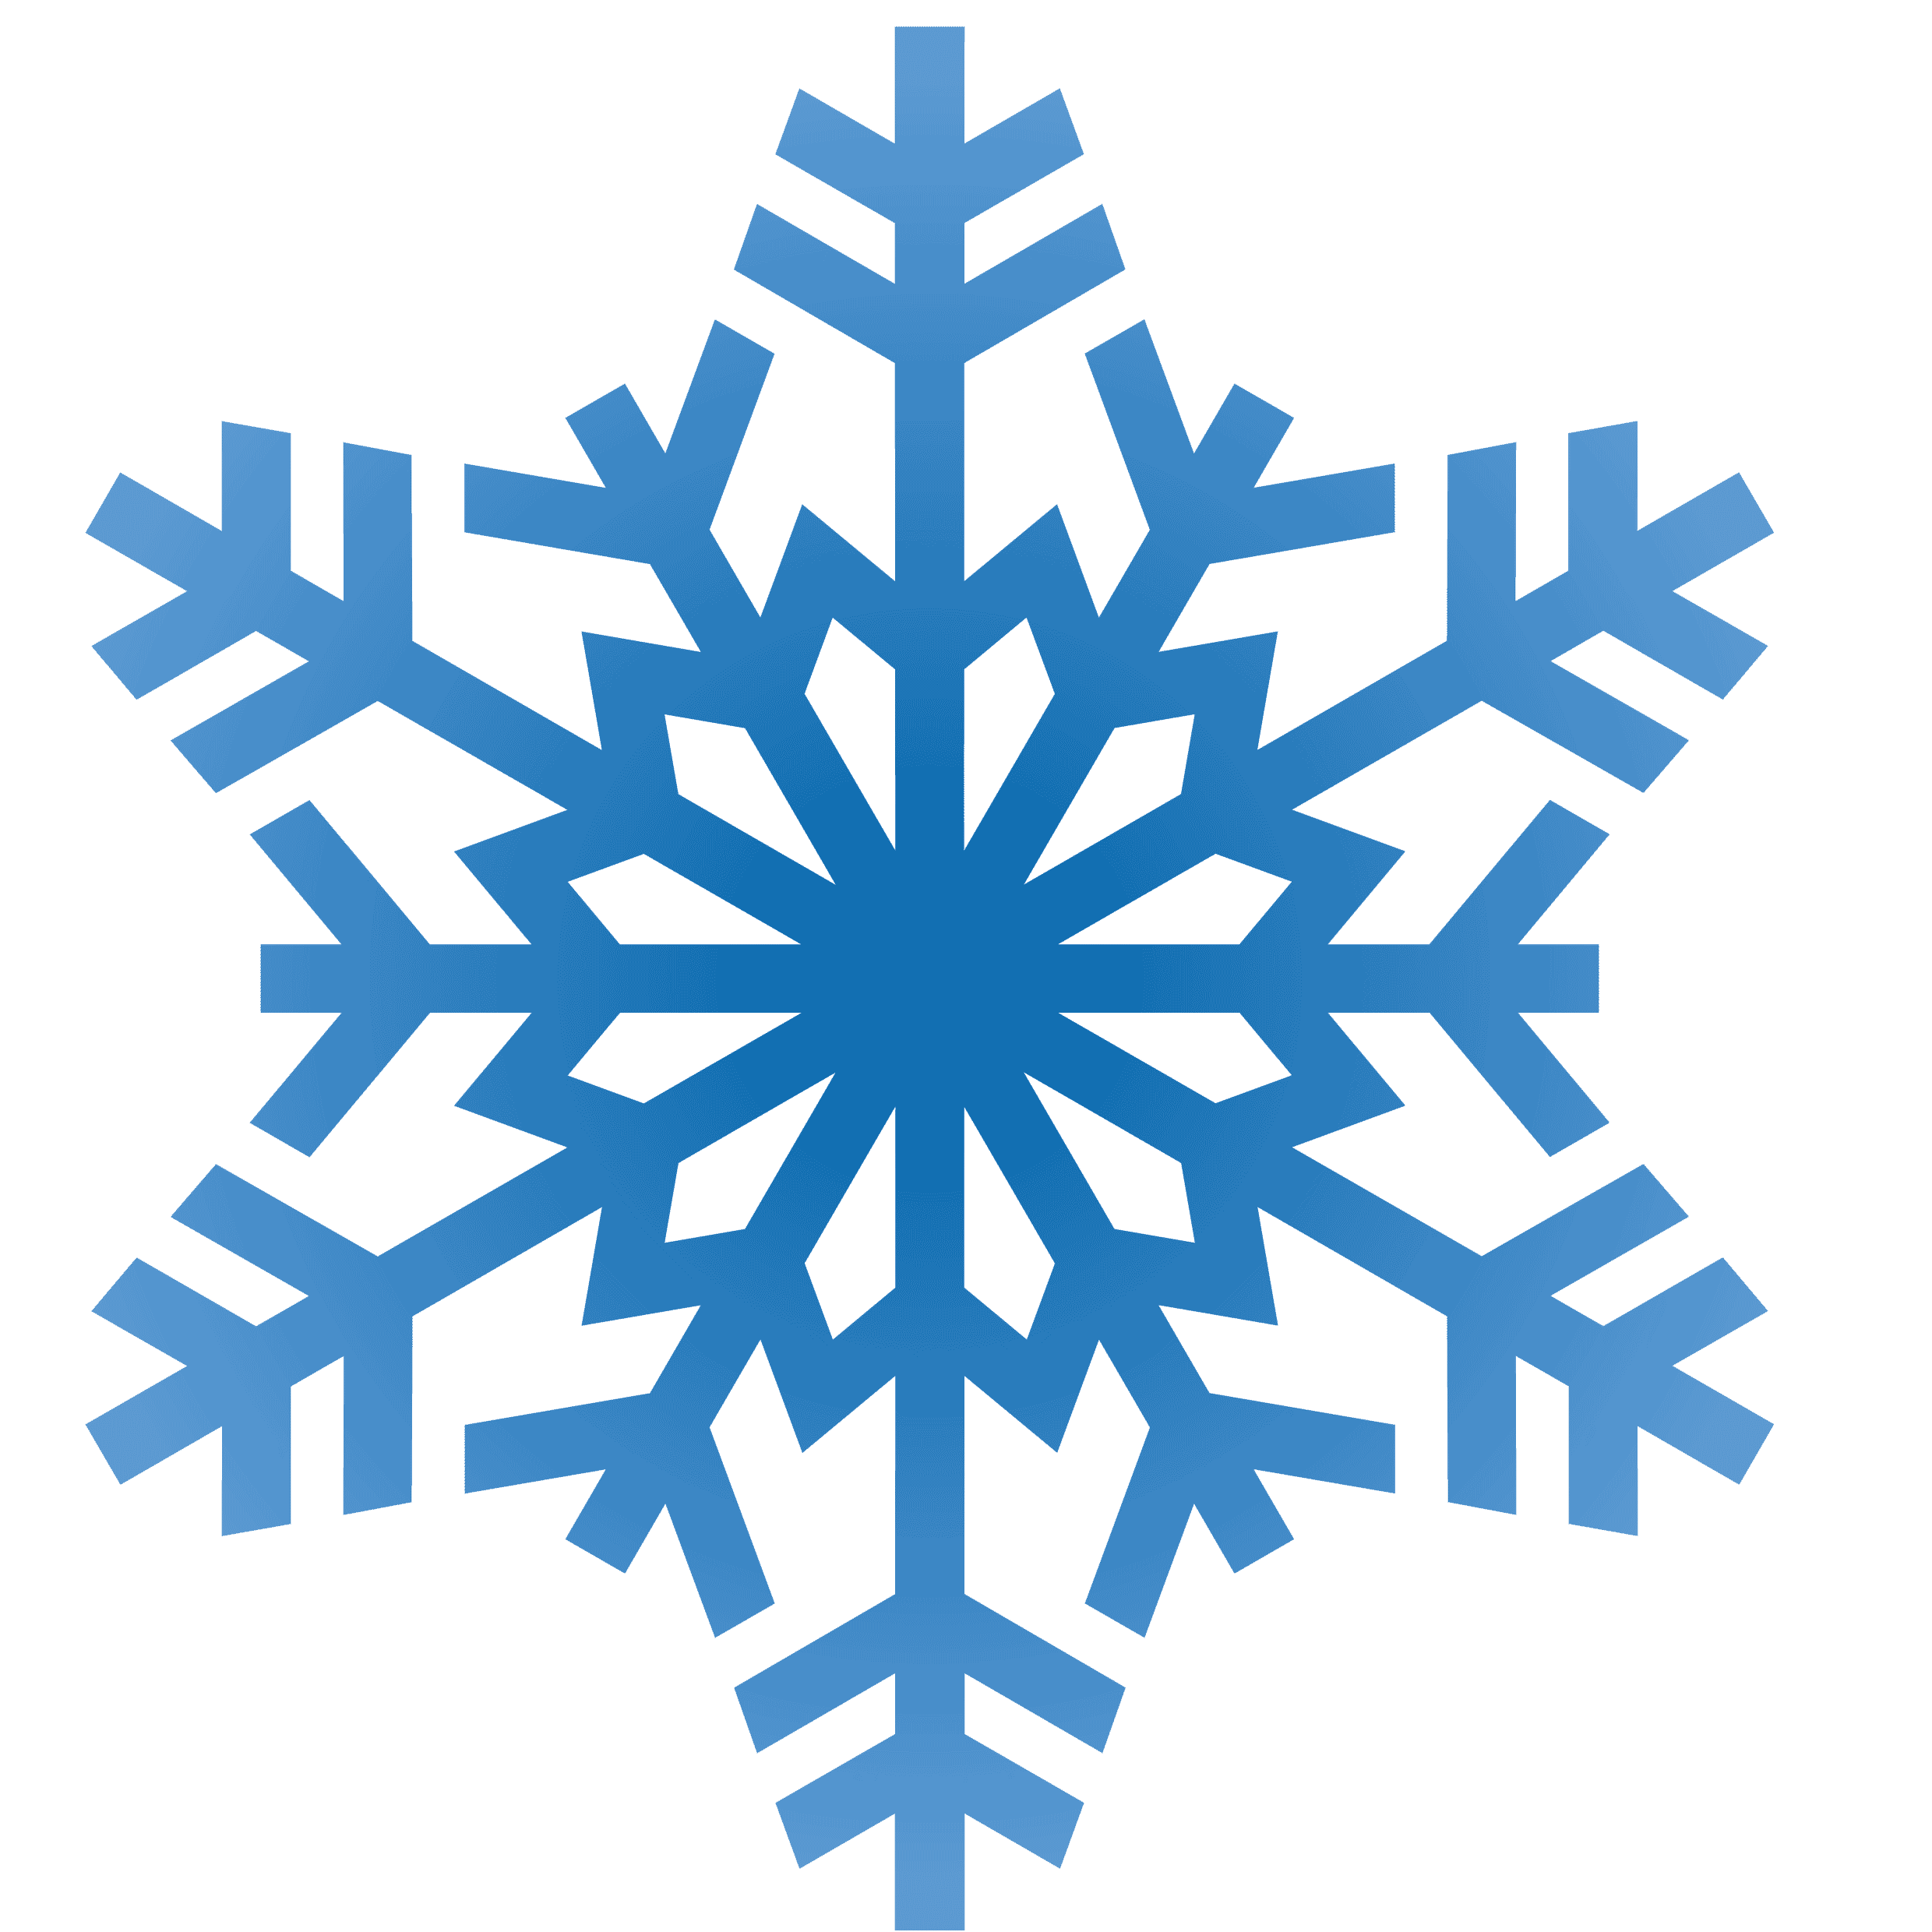 simple snowflake clipart at getdrawings com free for personal use rh getdrawings com clip art snowflakes free jpg clip art snowflakes clipart